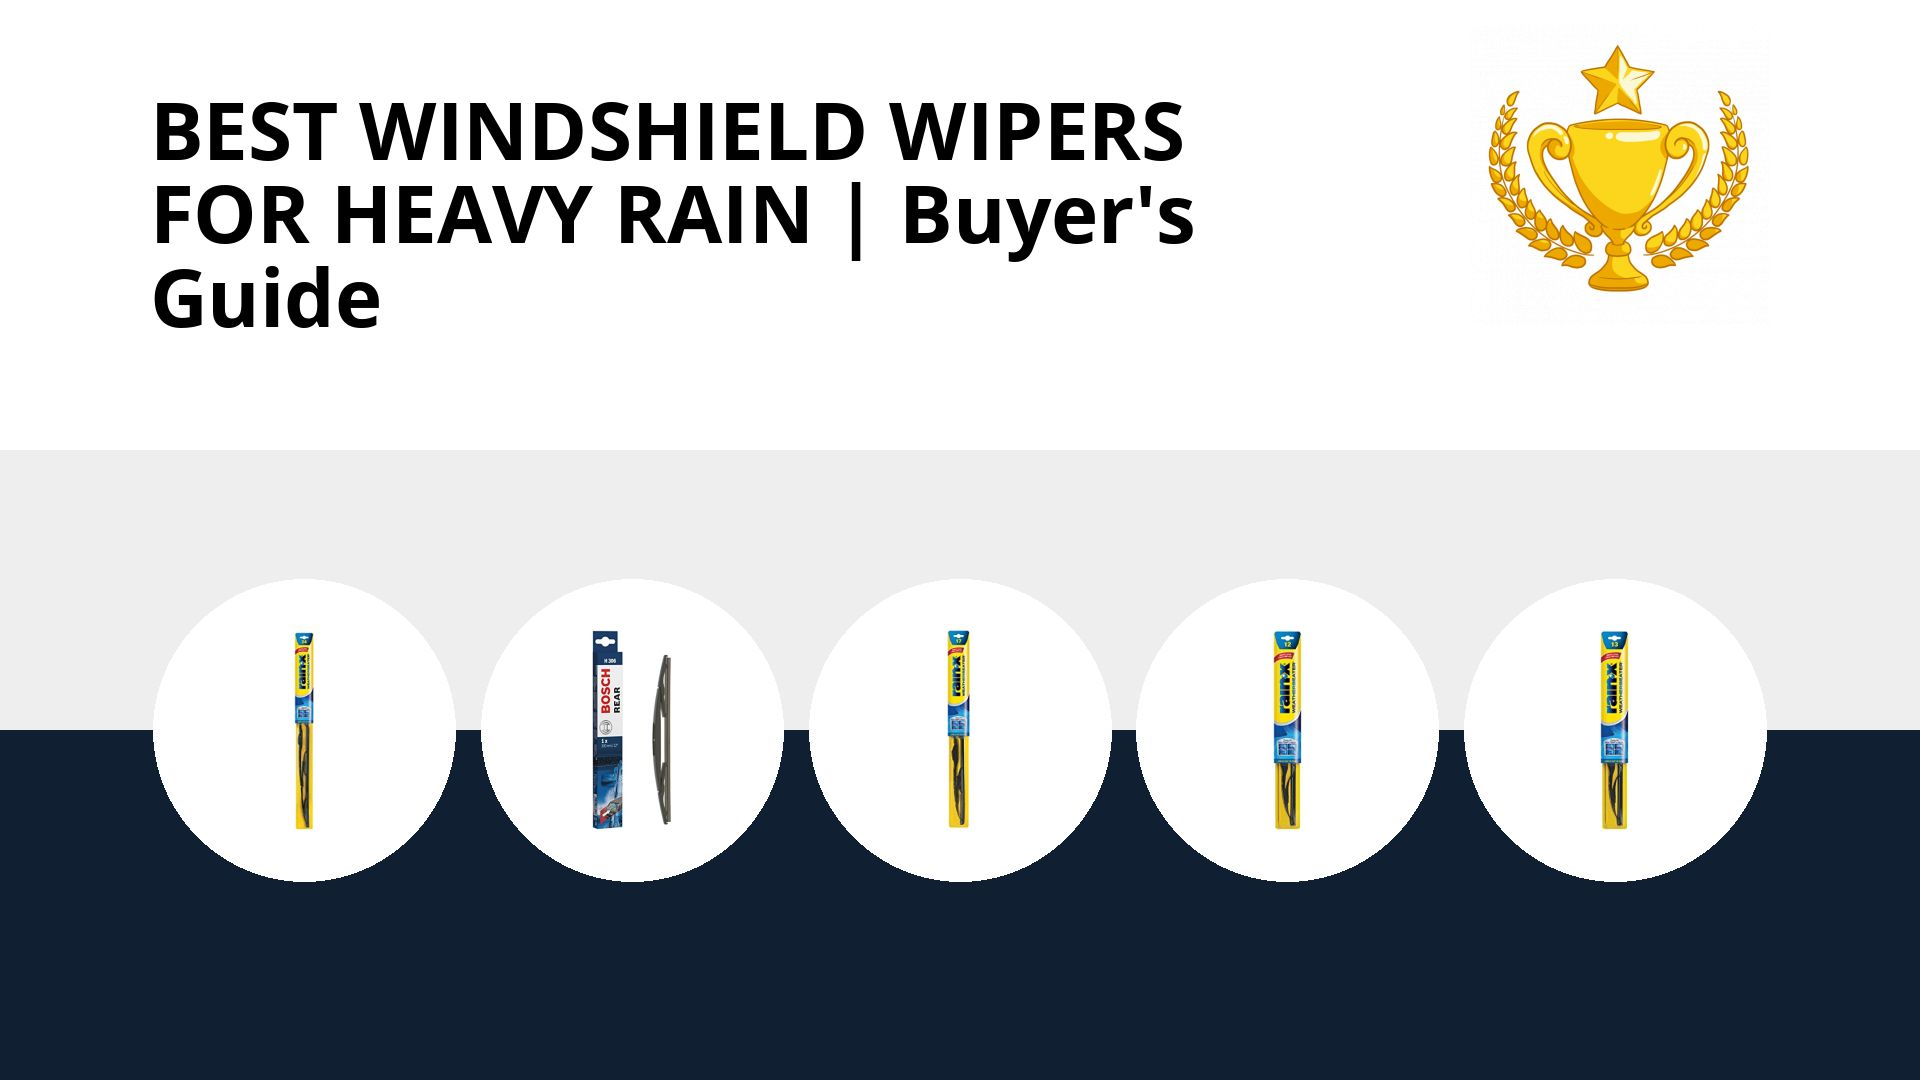 Best Windshield Wipers For Heavy Rain: image